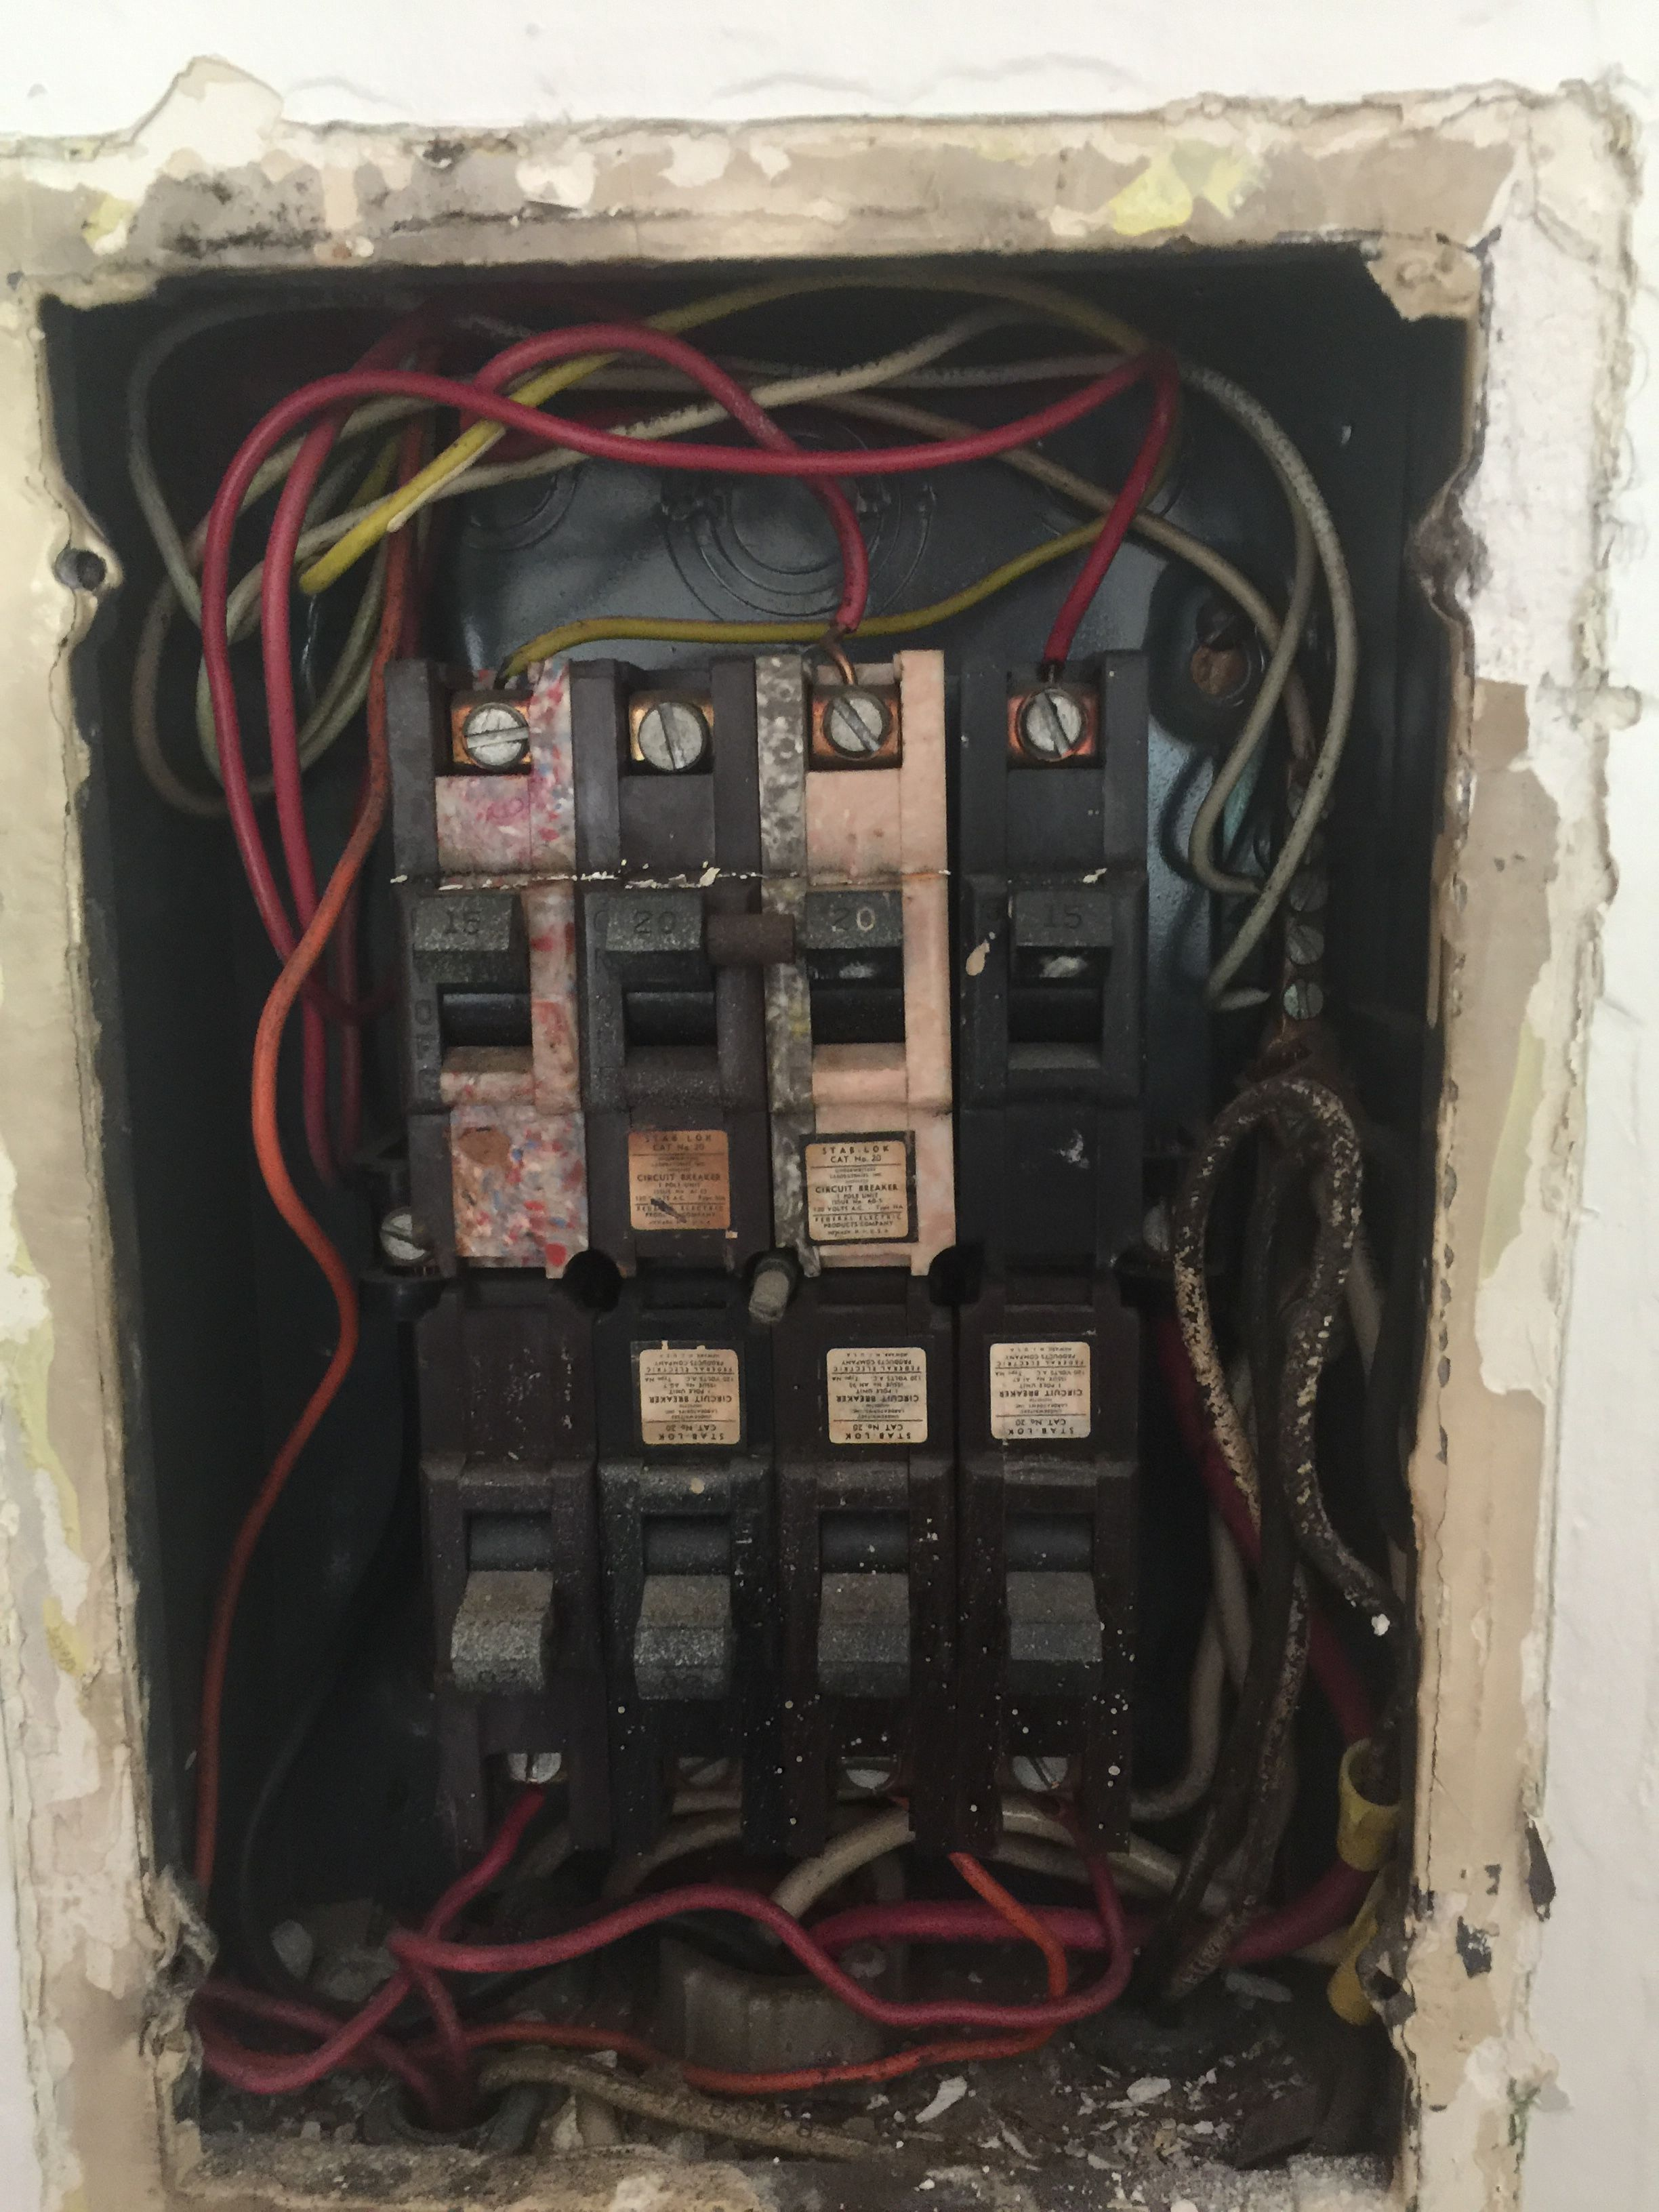 We recently received a question from a customer regarding electrical ...